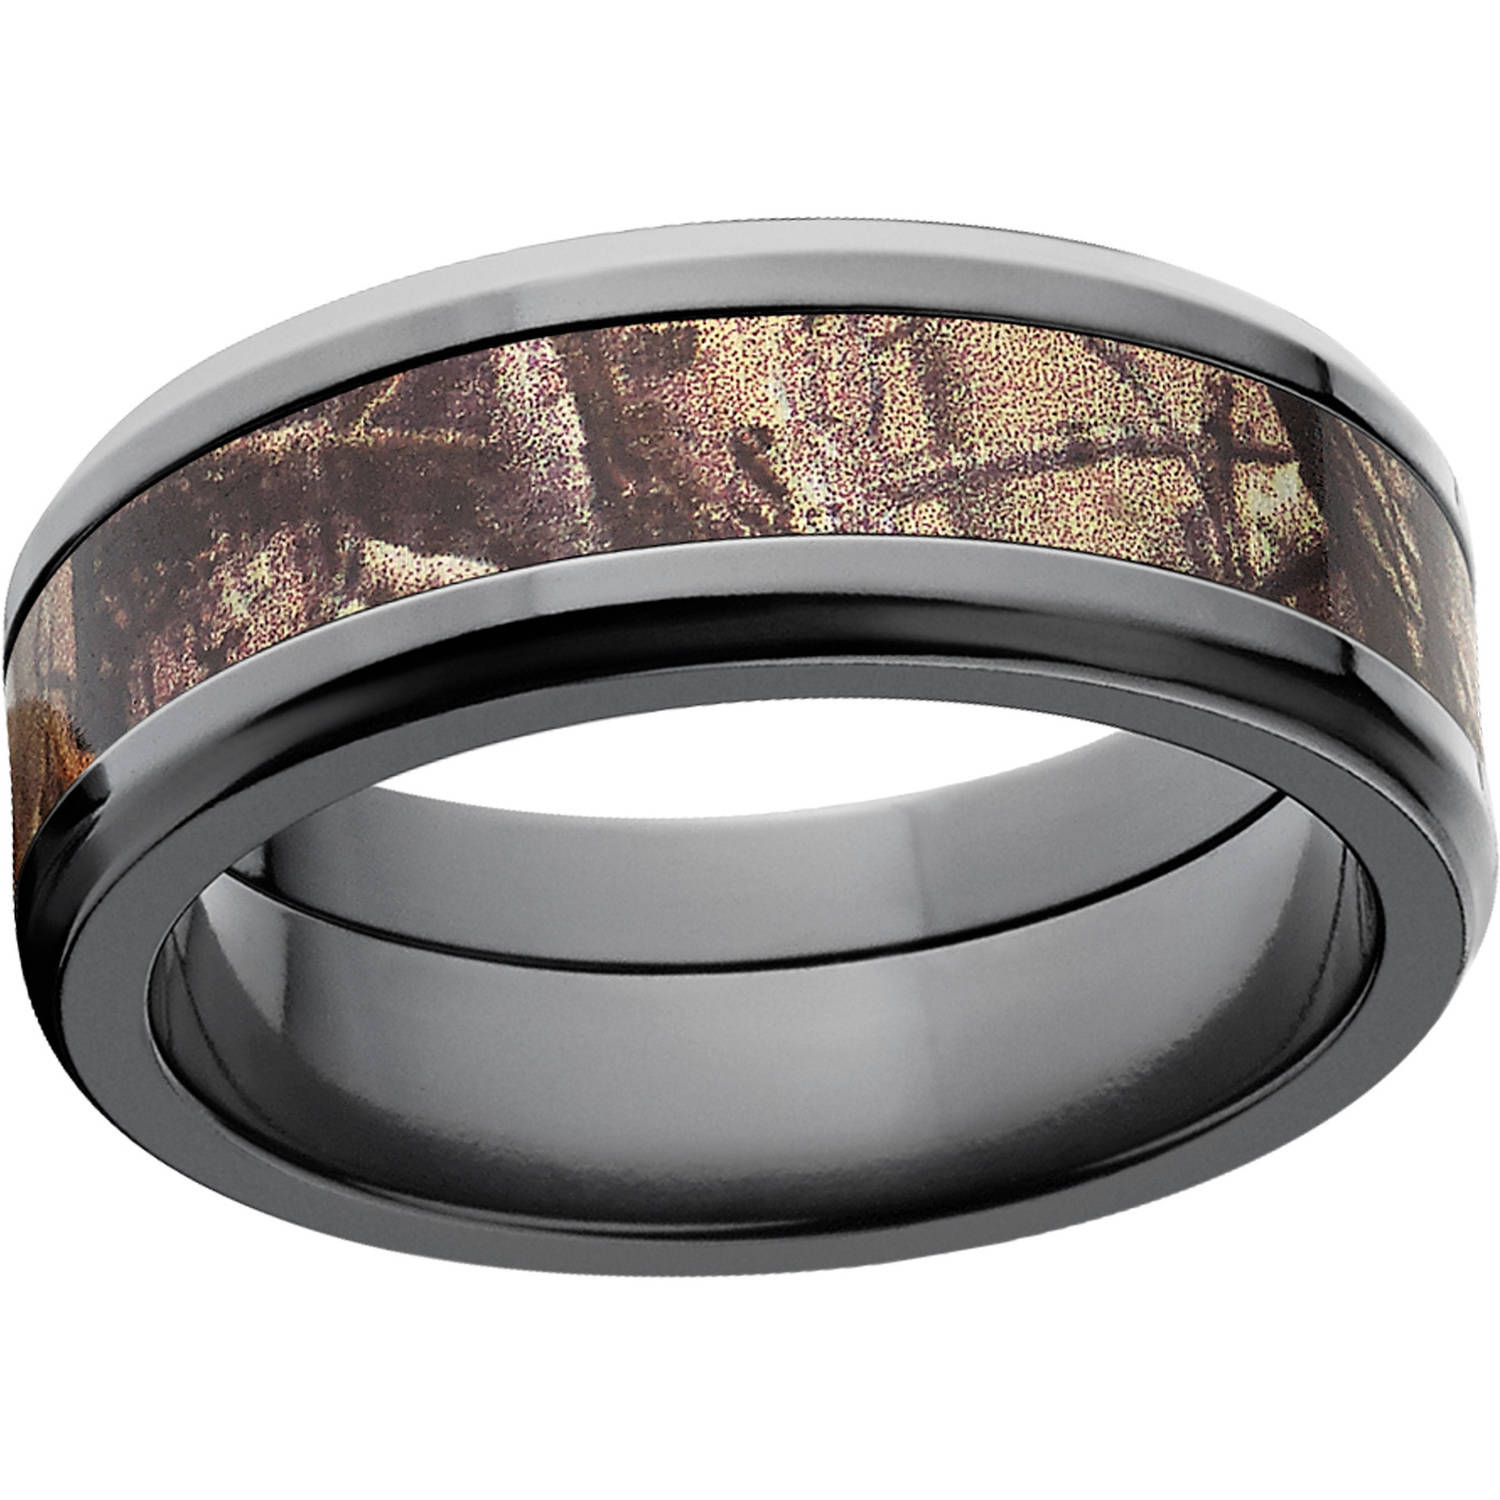 mens bands men for black usa steel wedding rings made damascus